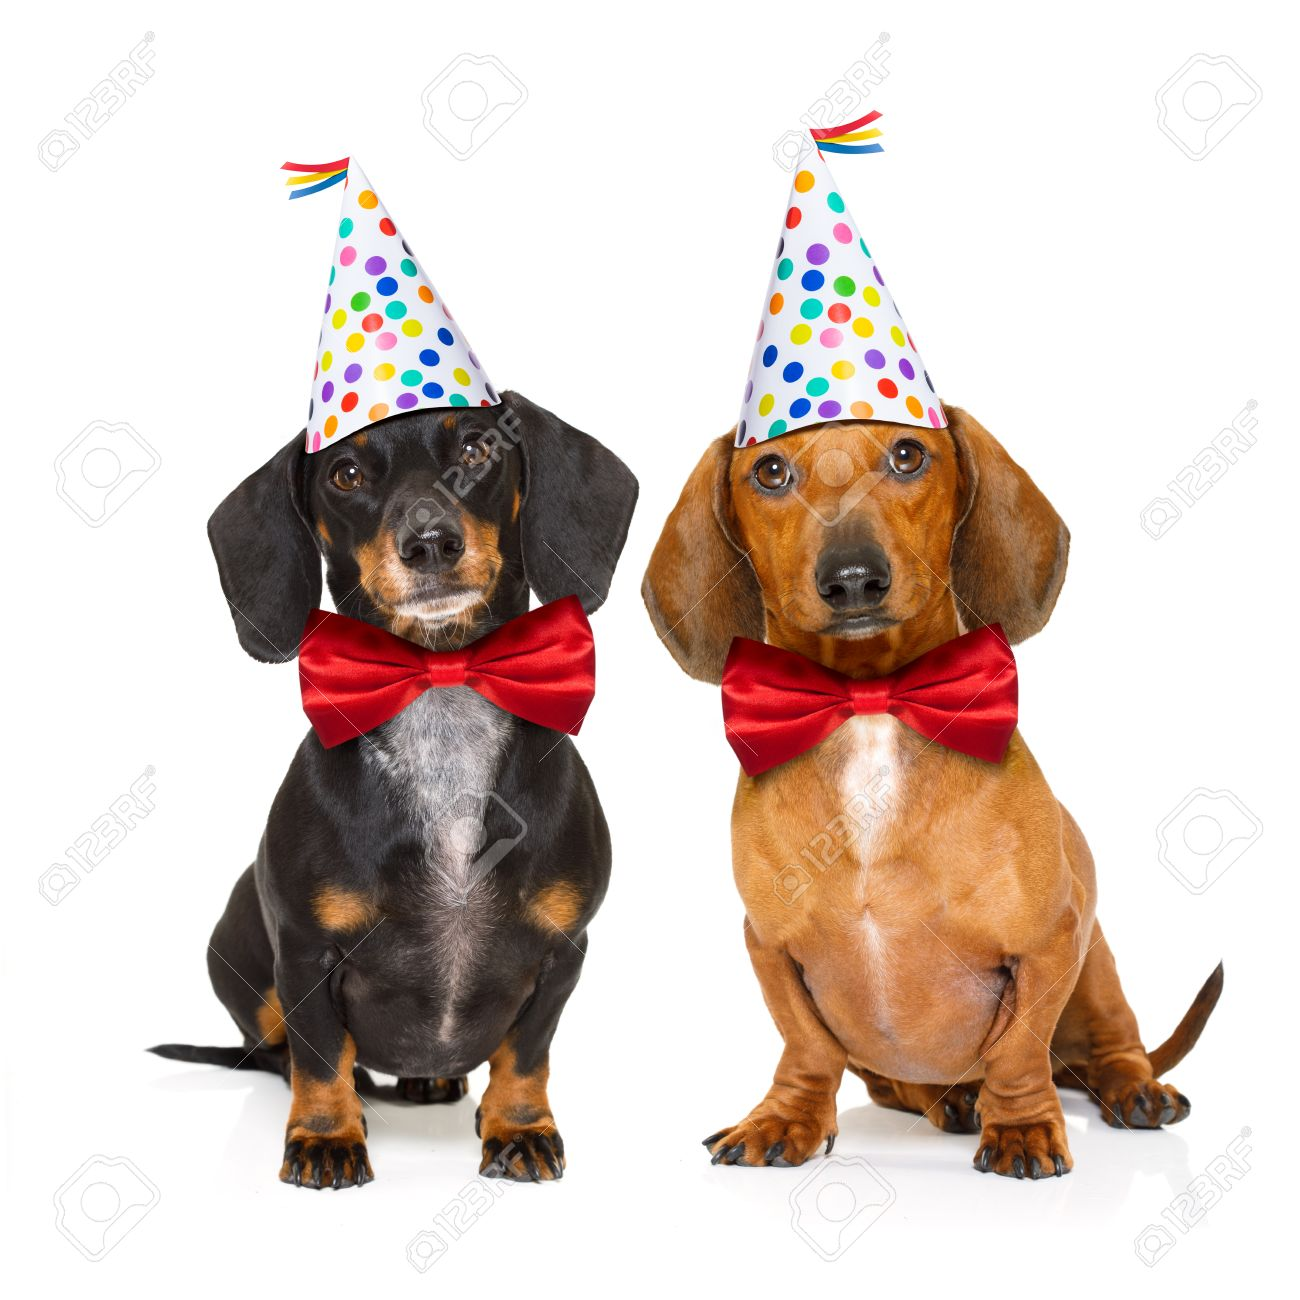 Couple Of Two Dachshund Or Sausage Dogs Hungry For A Happy Birthday Cake With Candles